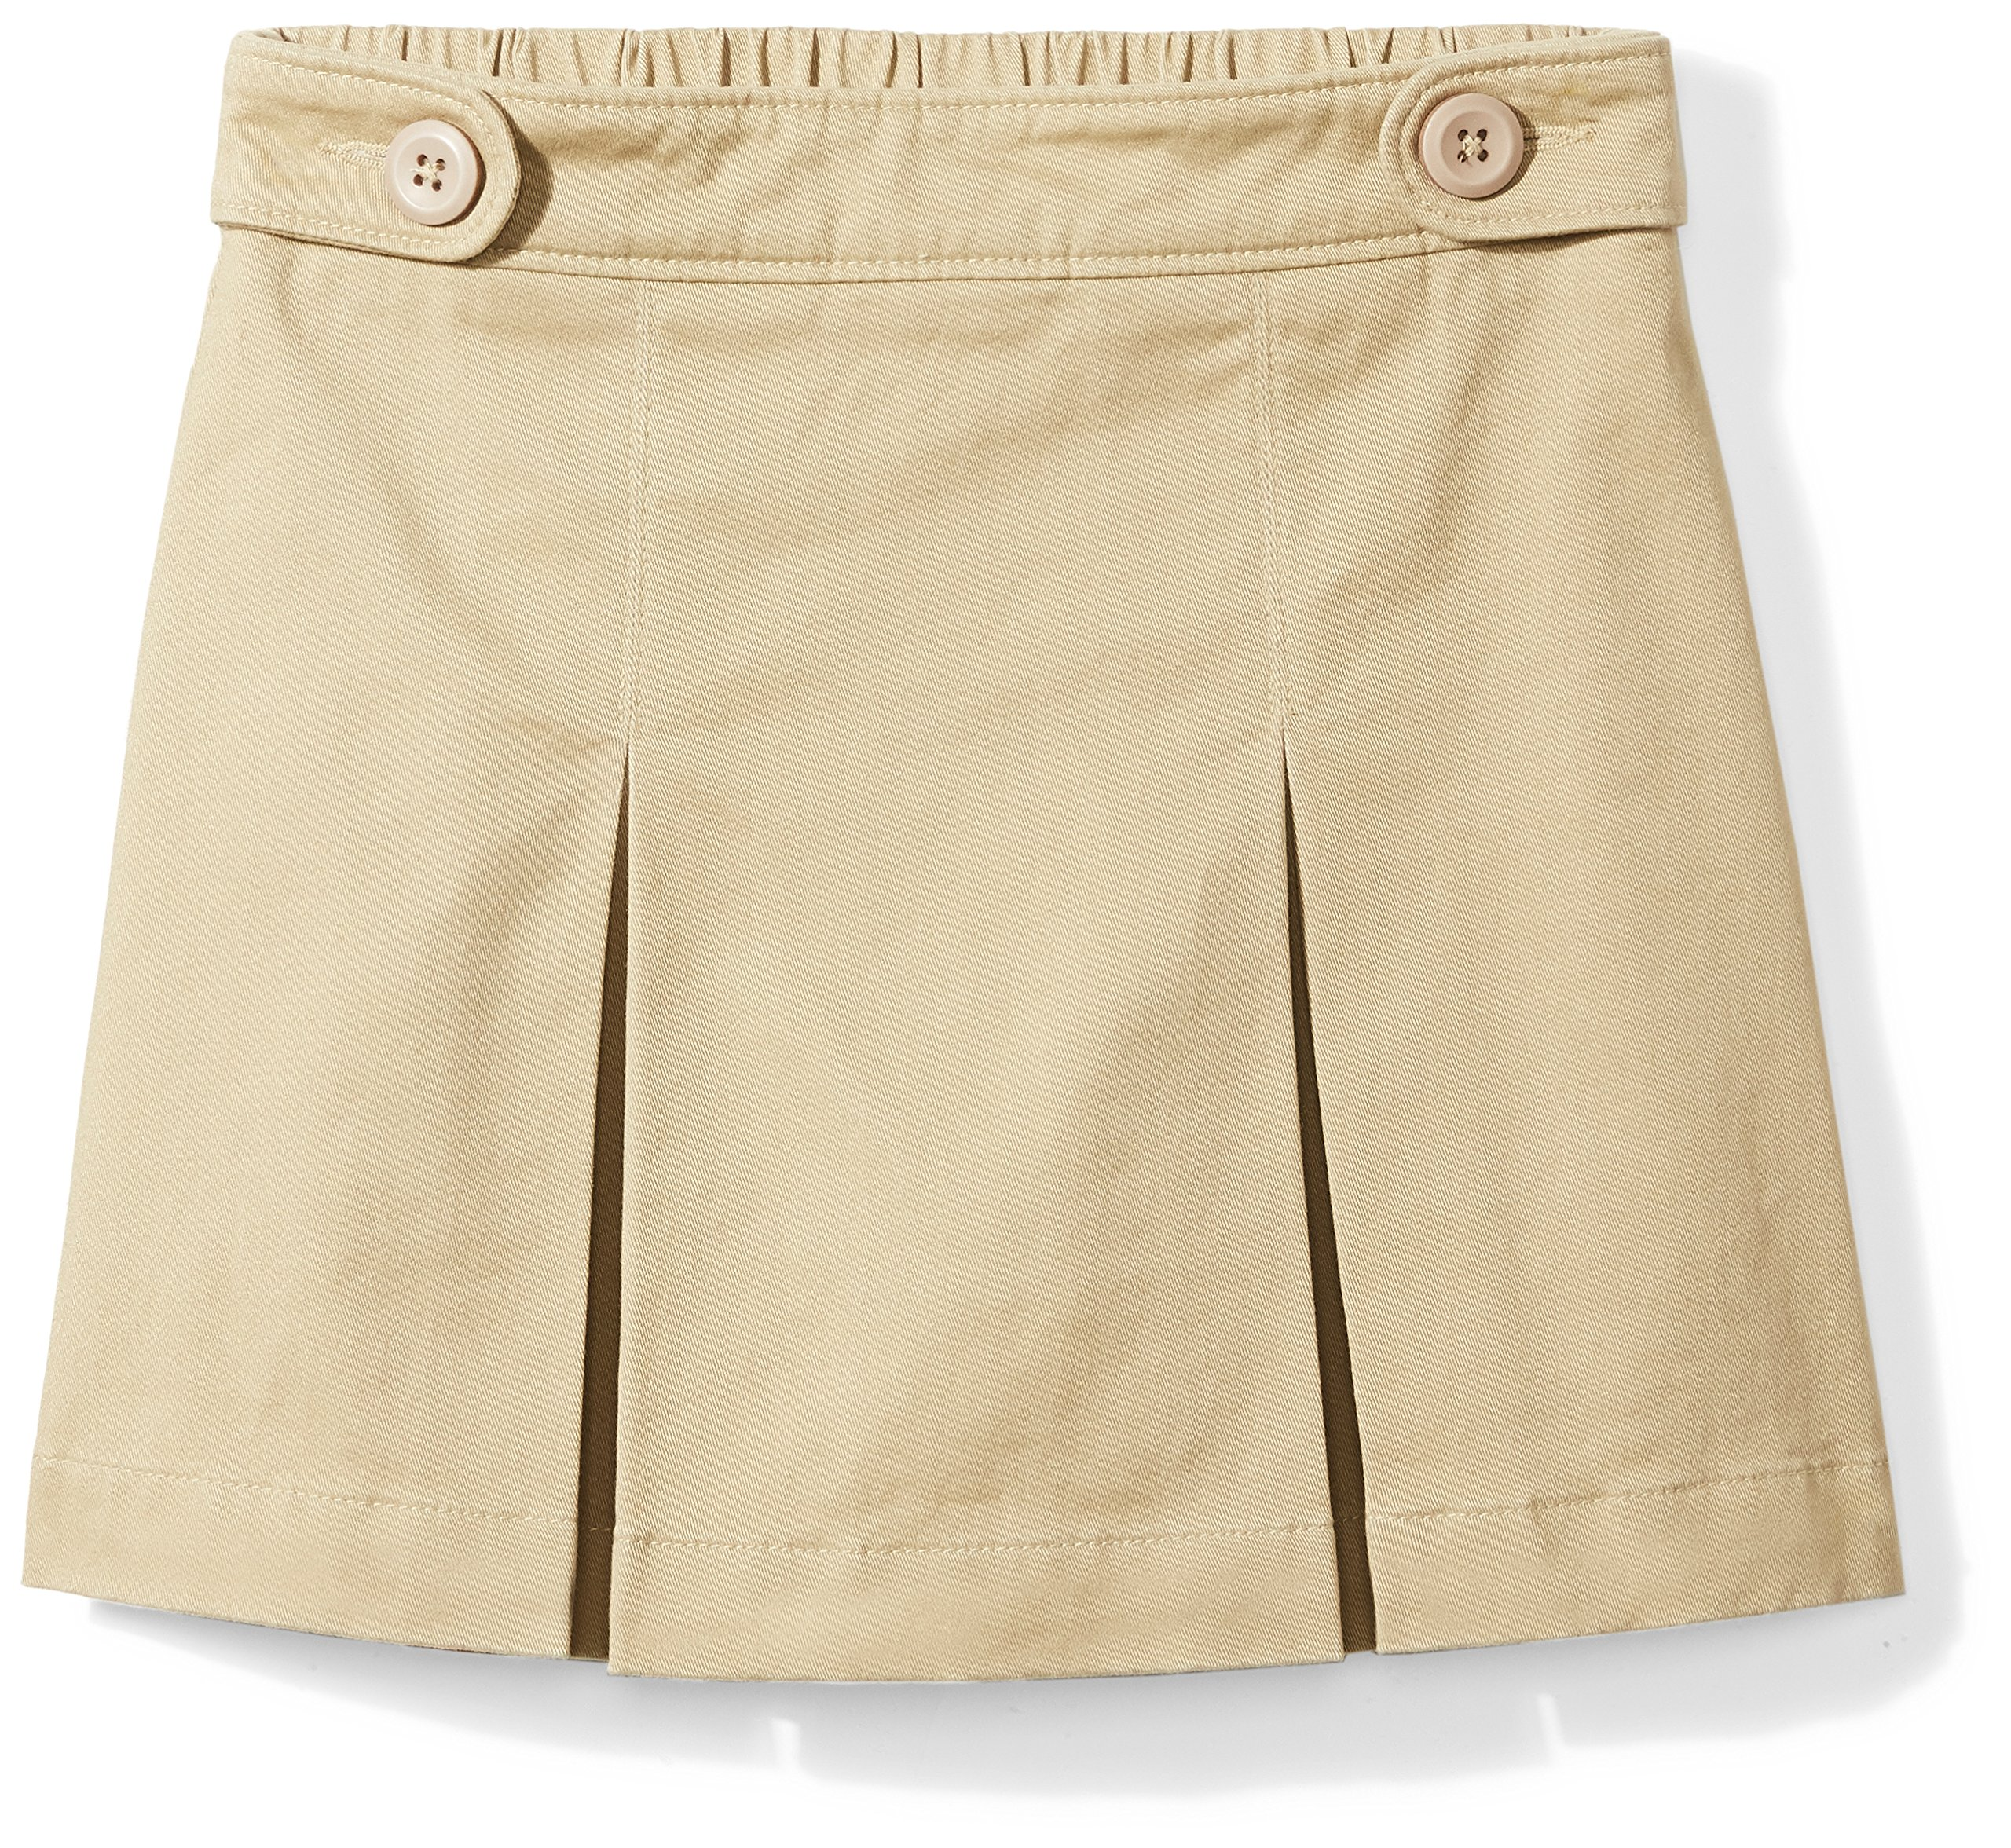 Amazon Essentials Girls' Uniform Skort, Khaki, S (6/7)